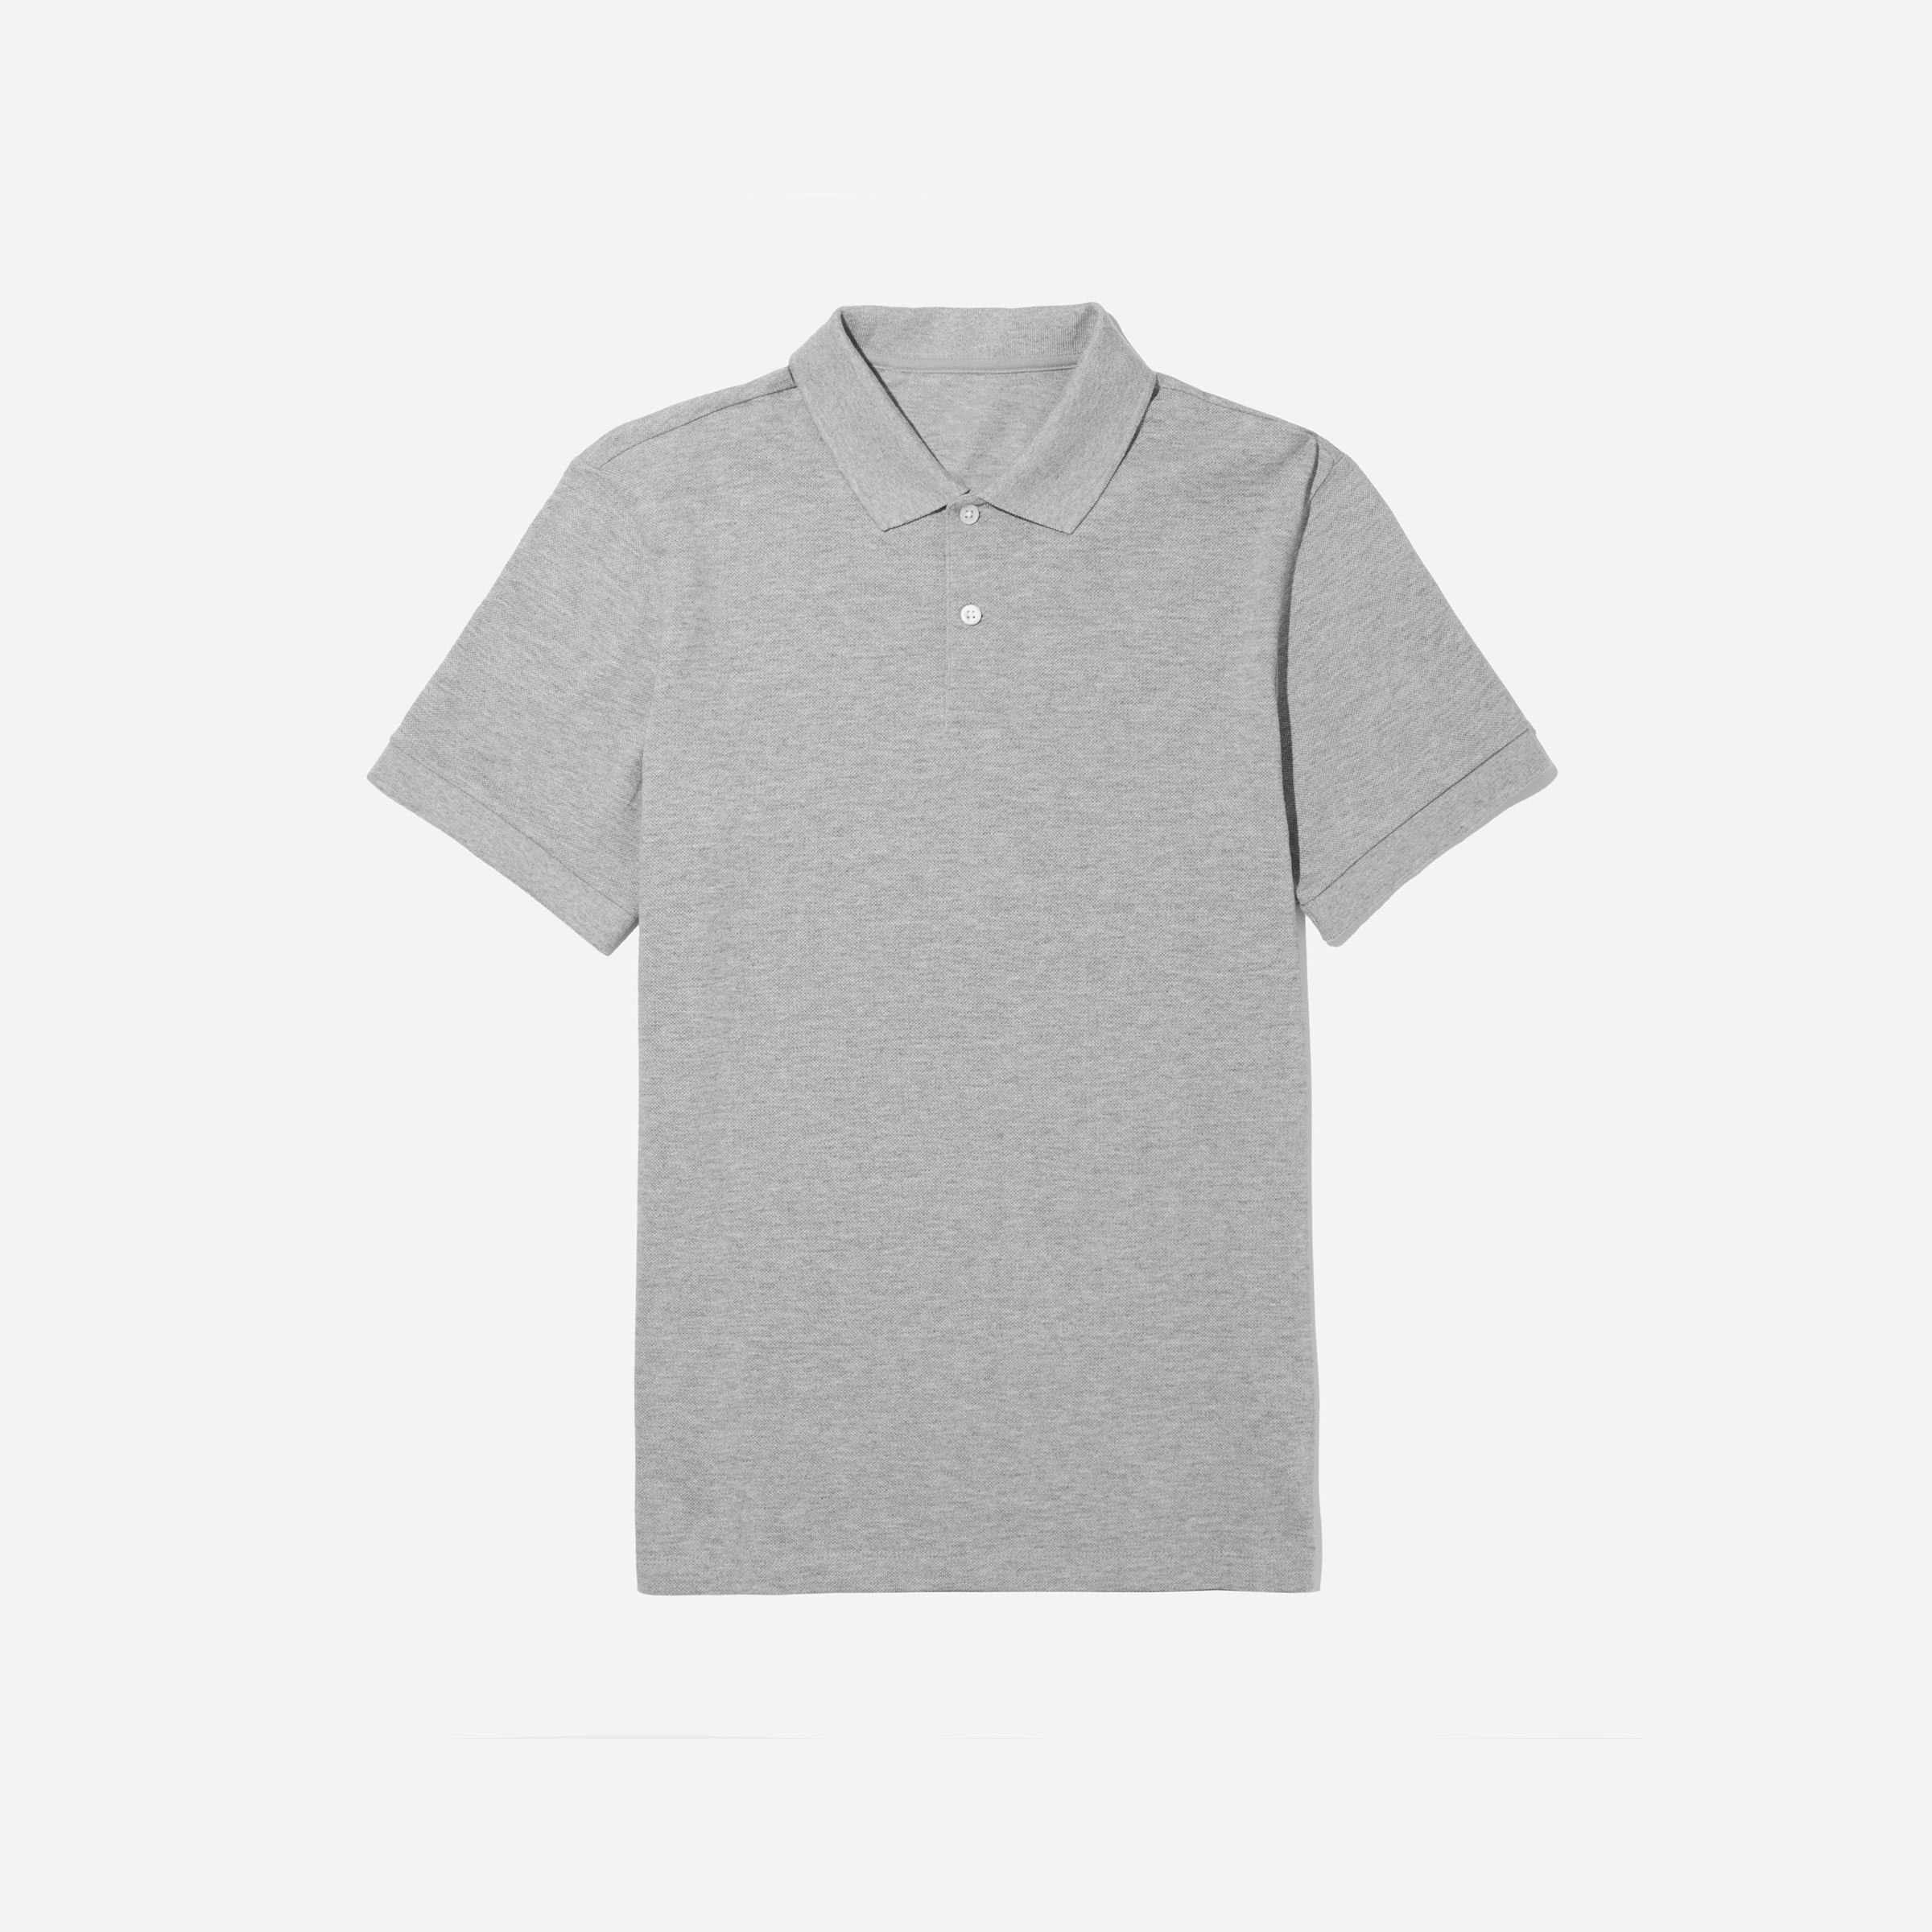 How To Make A Polo Shirt More Fitted